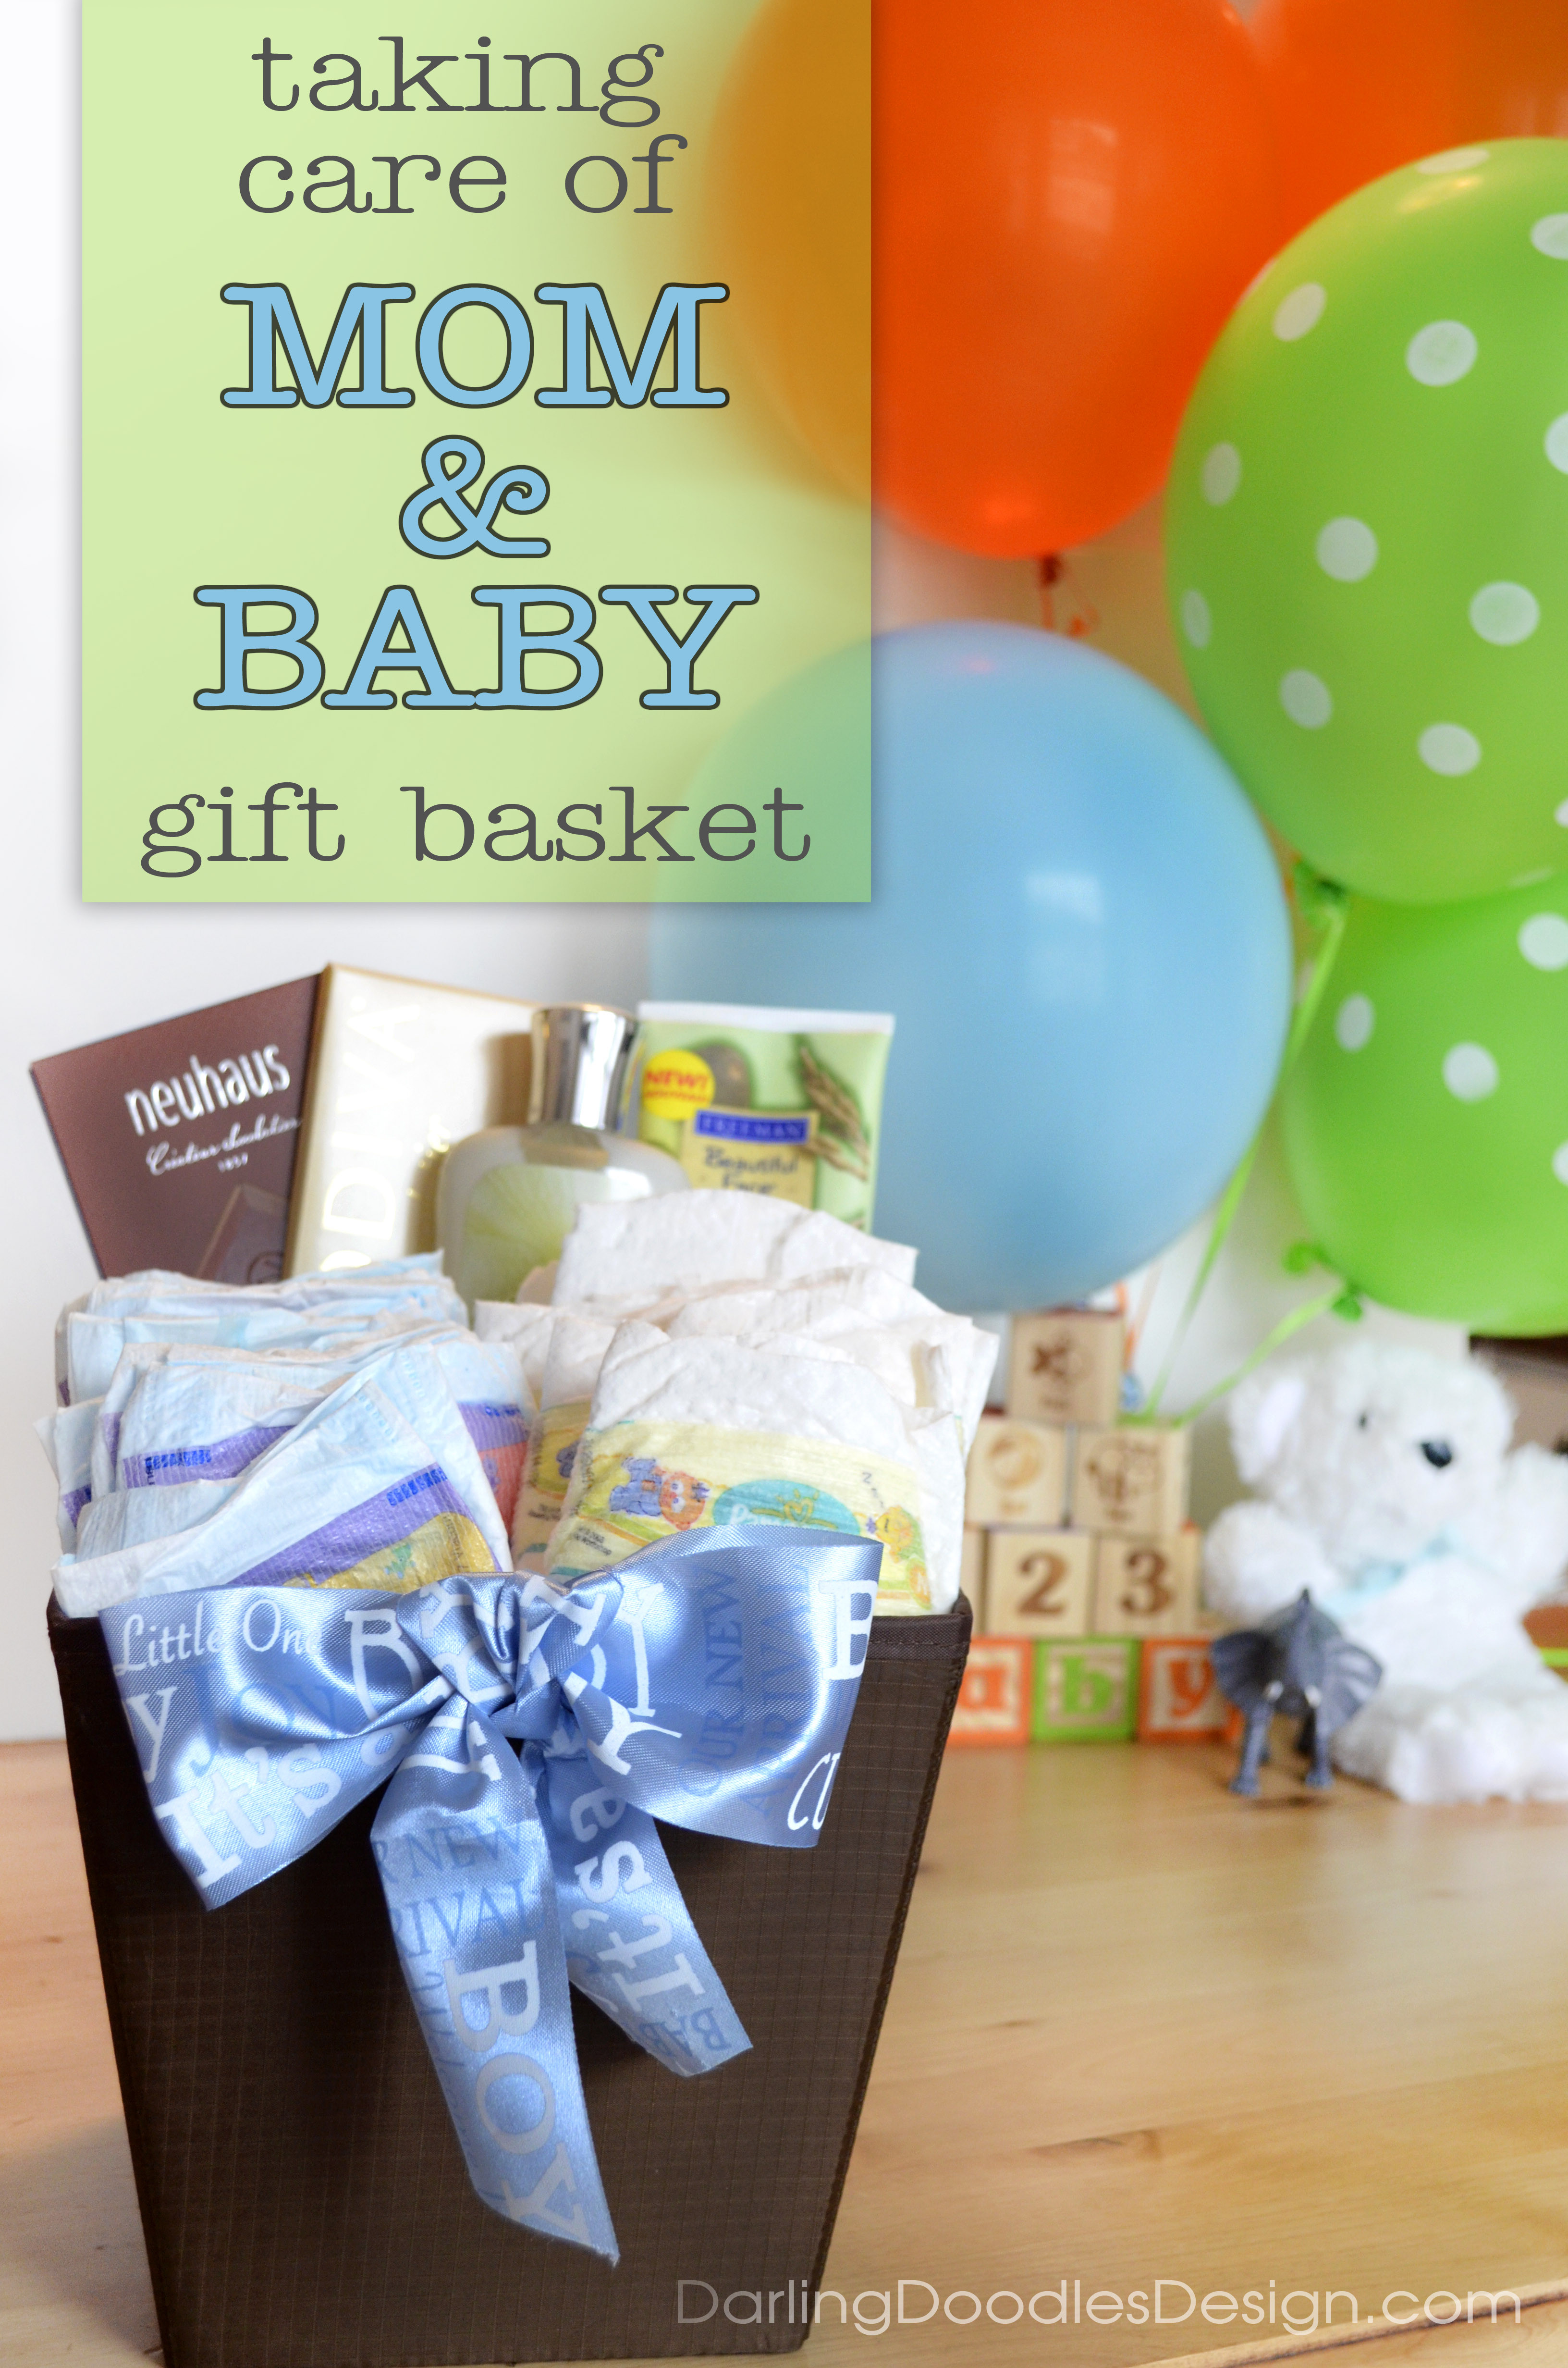 Best ideas about Baby Shower Gift Ideas For Mom . Save or Pin A Baby Shower Gift for Mom & Baby Darling Doodles Now.